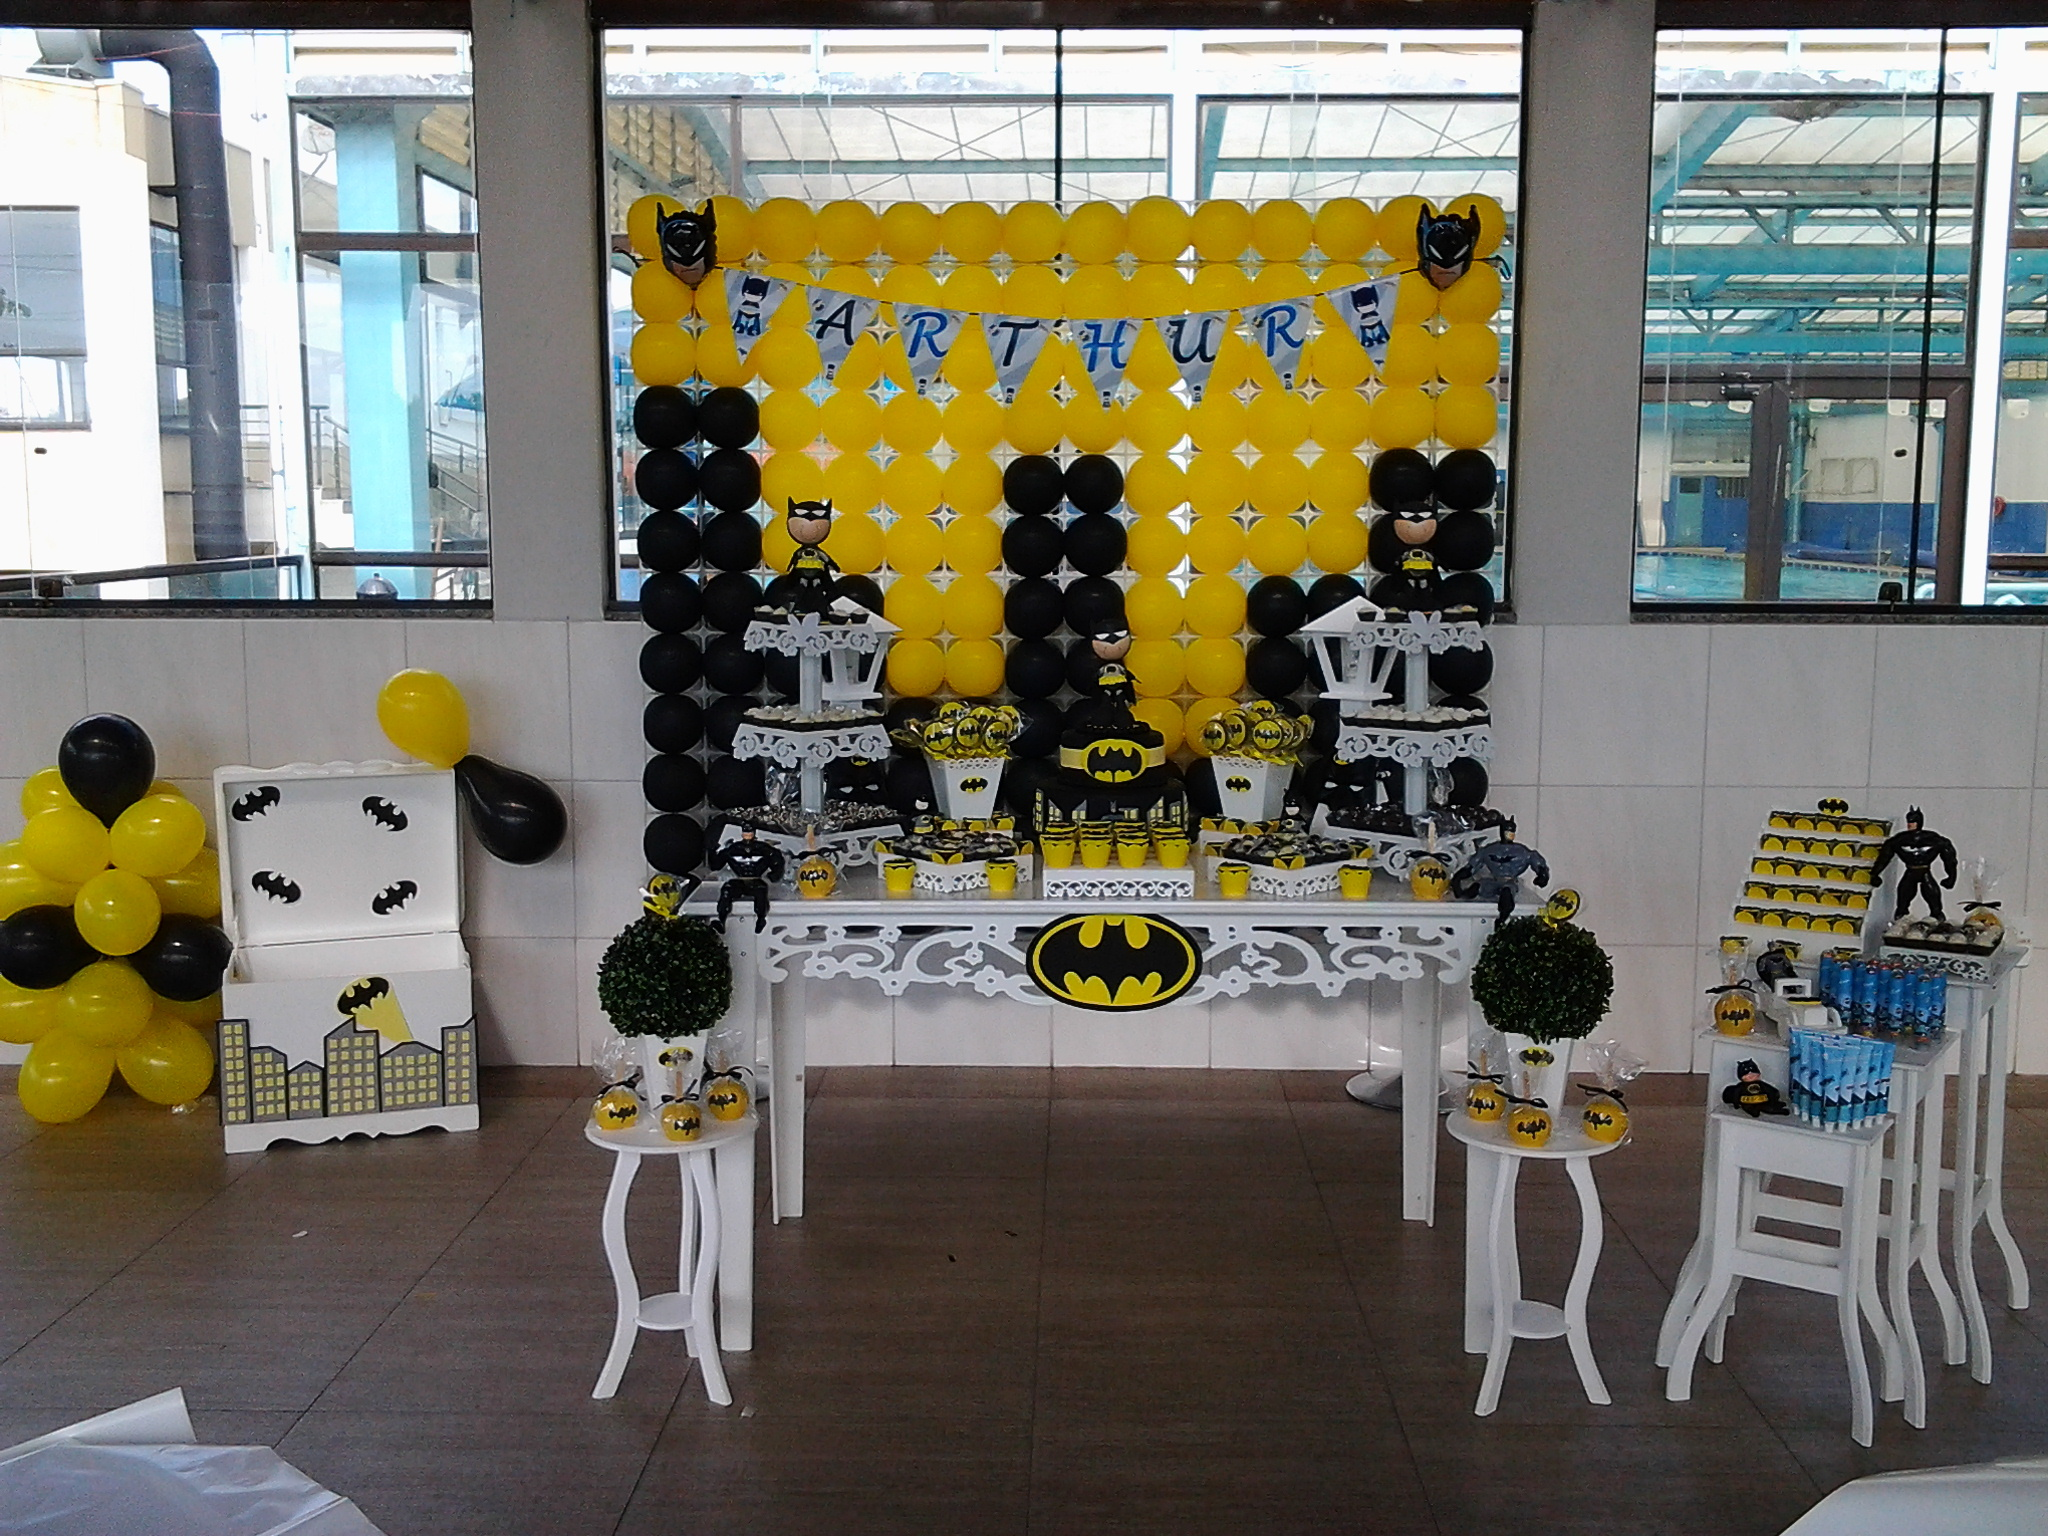 decoracao festa batman : decoracao festa batman:festa batman festa decoracao festa batman aniversario decoracao festa